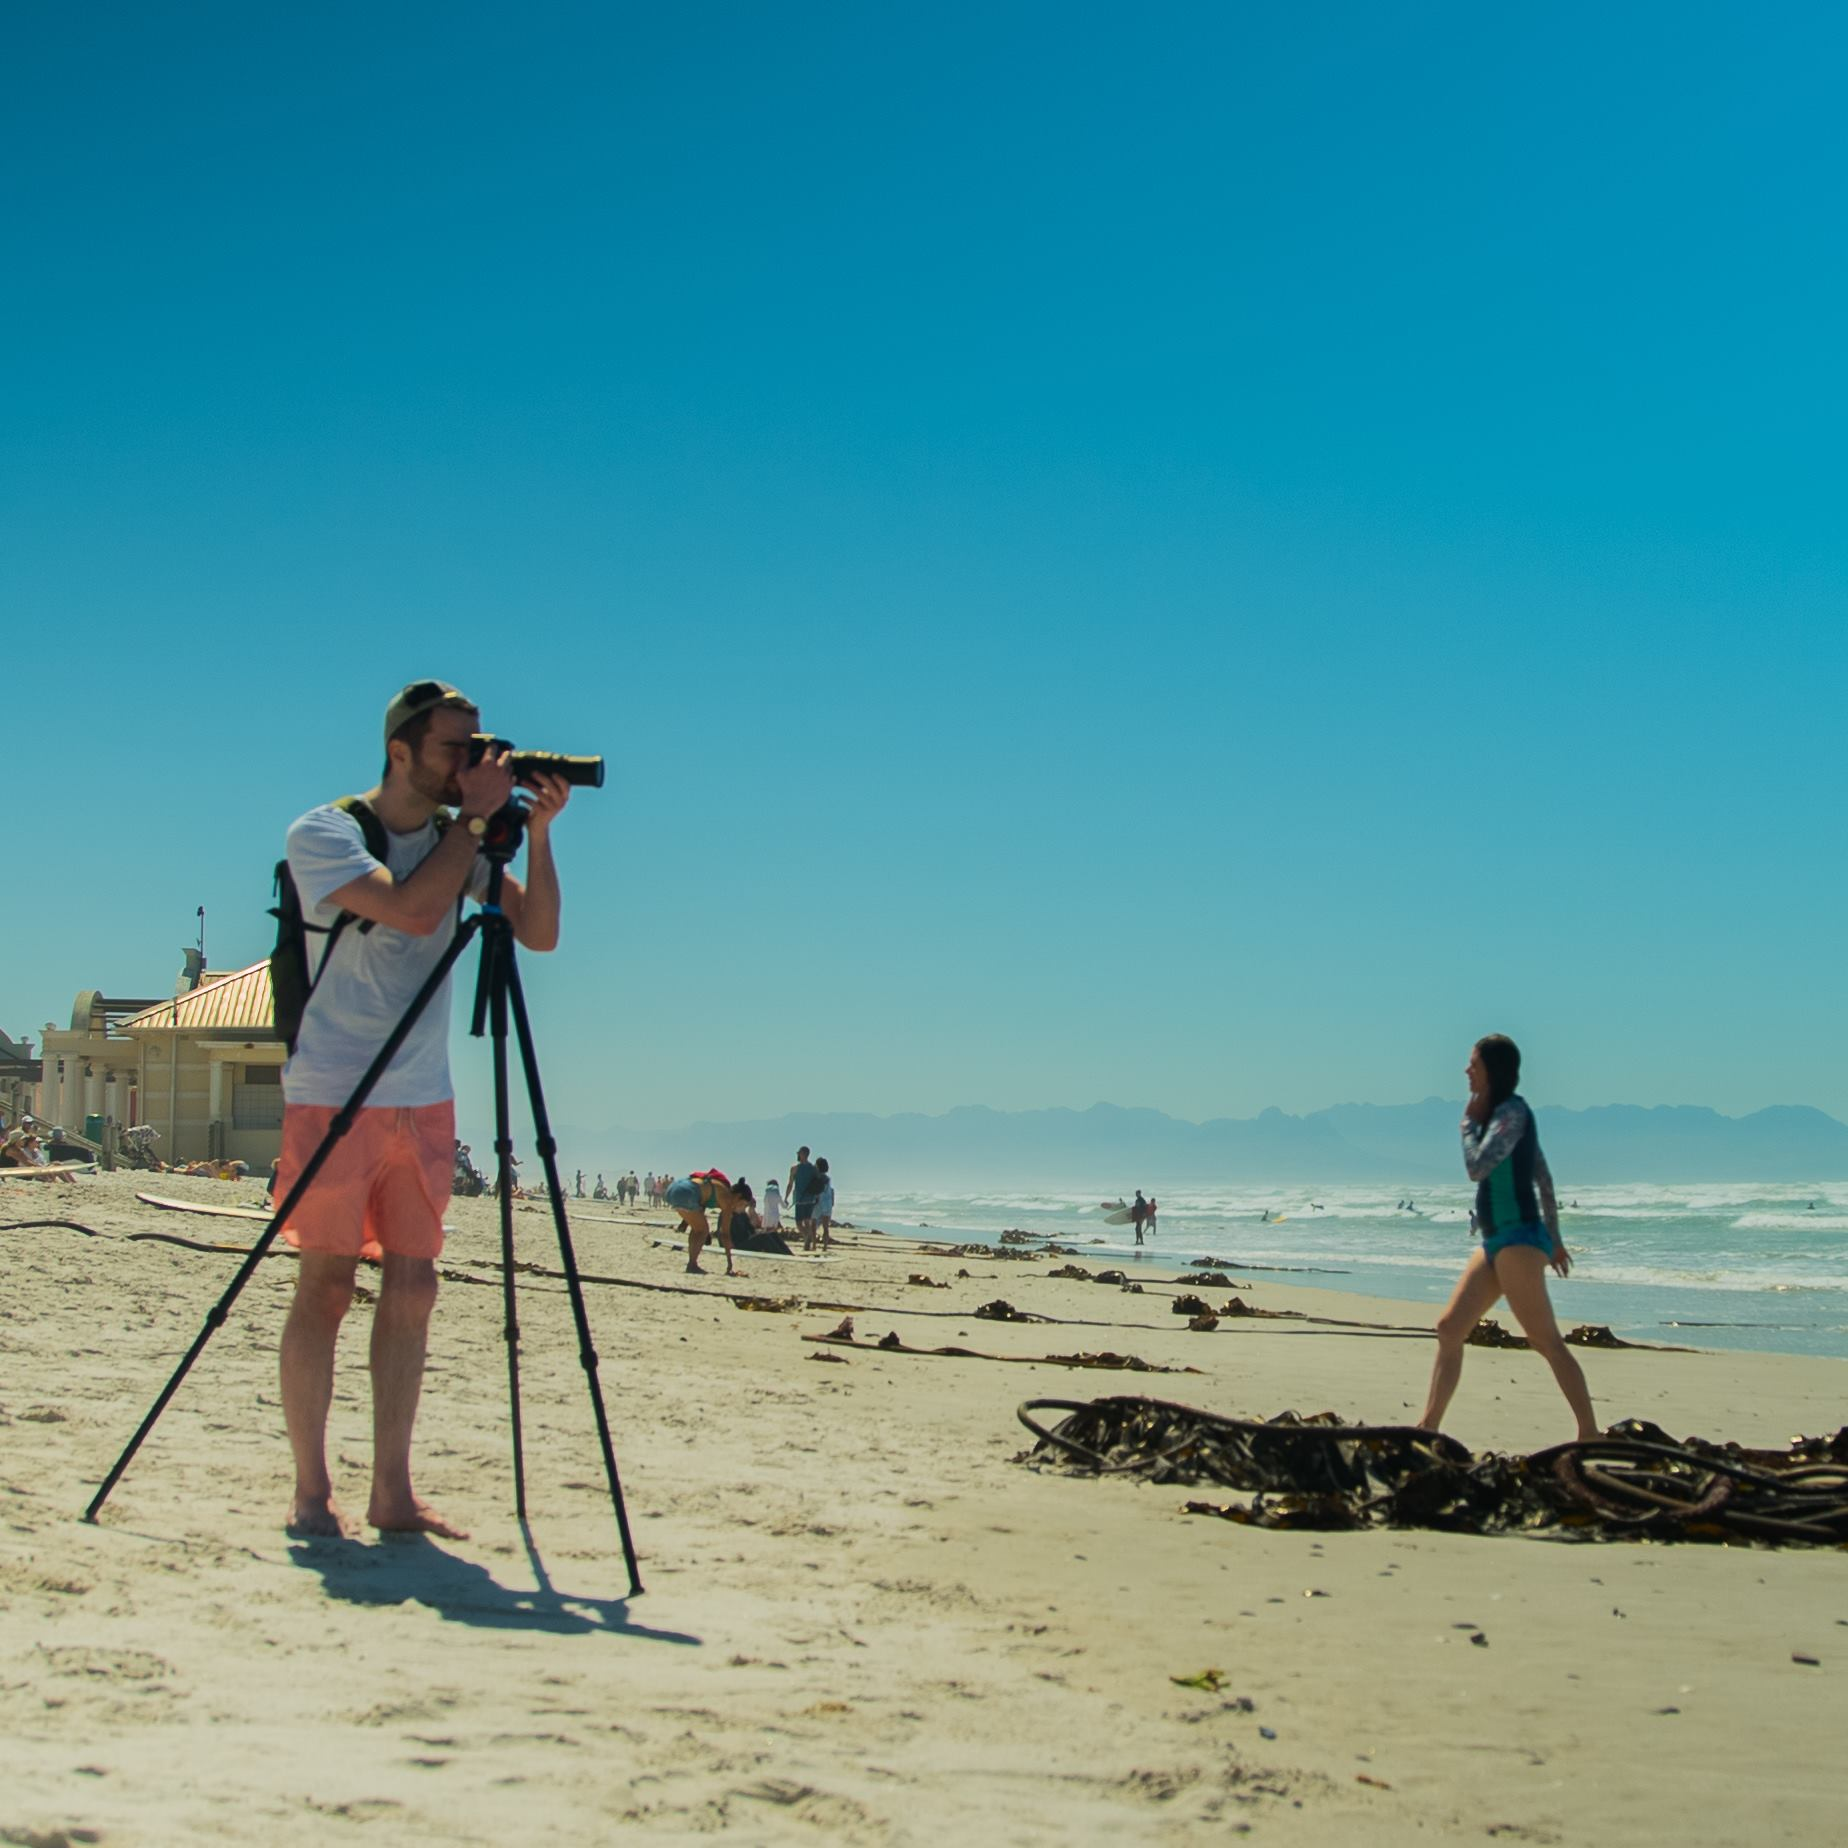 Will on shoot with that A7sii, don't get distracted by the shorts!